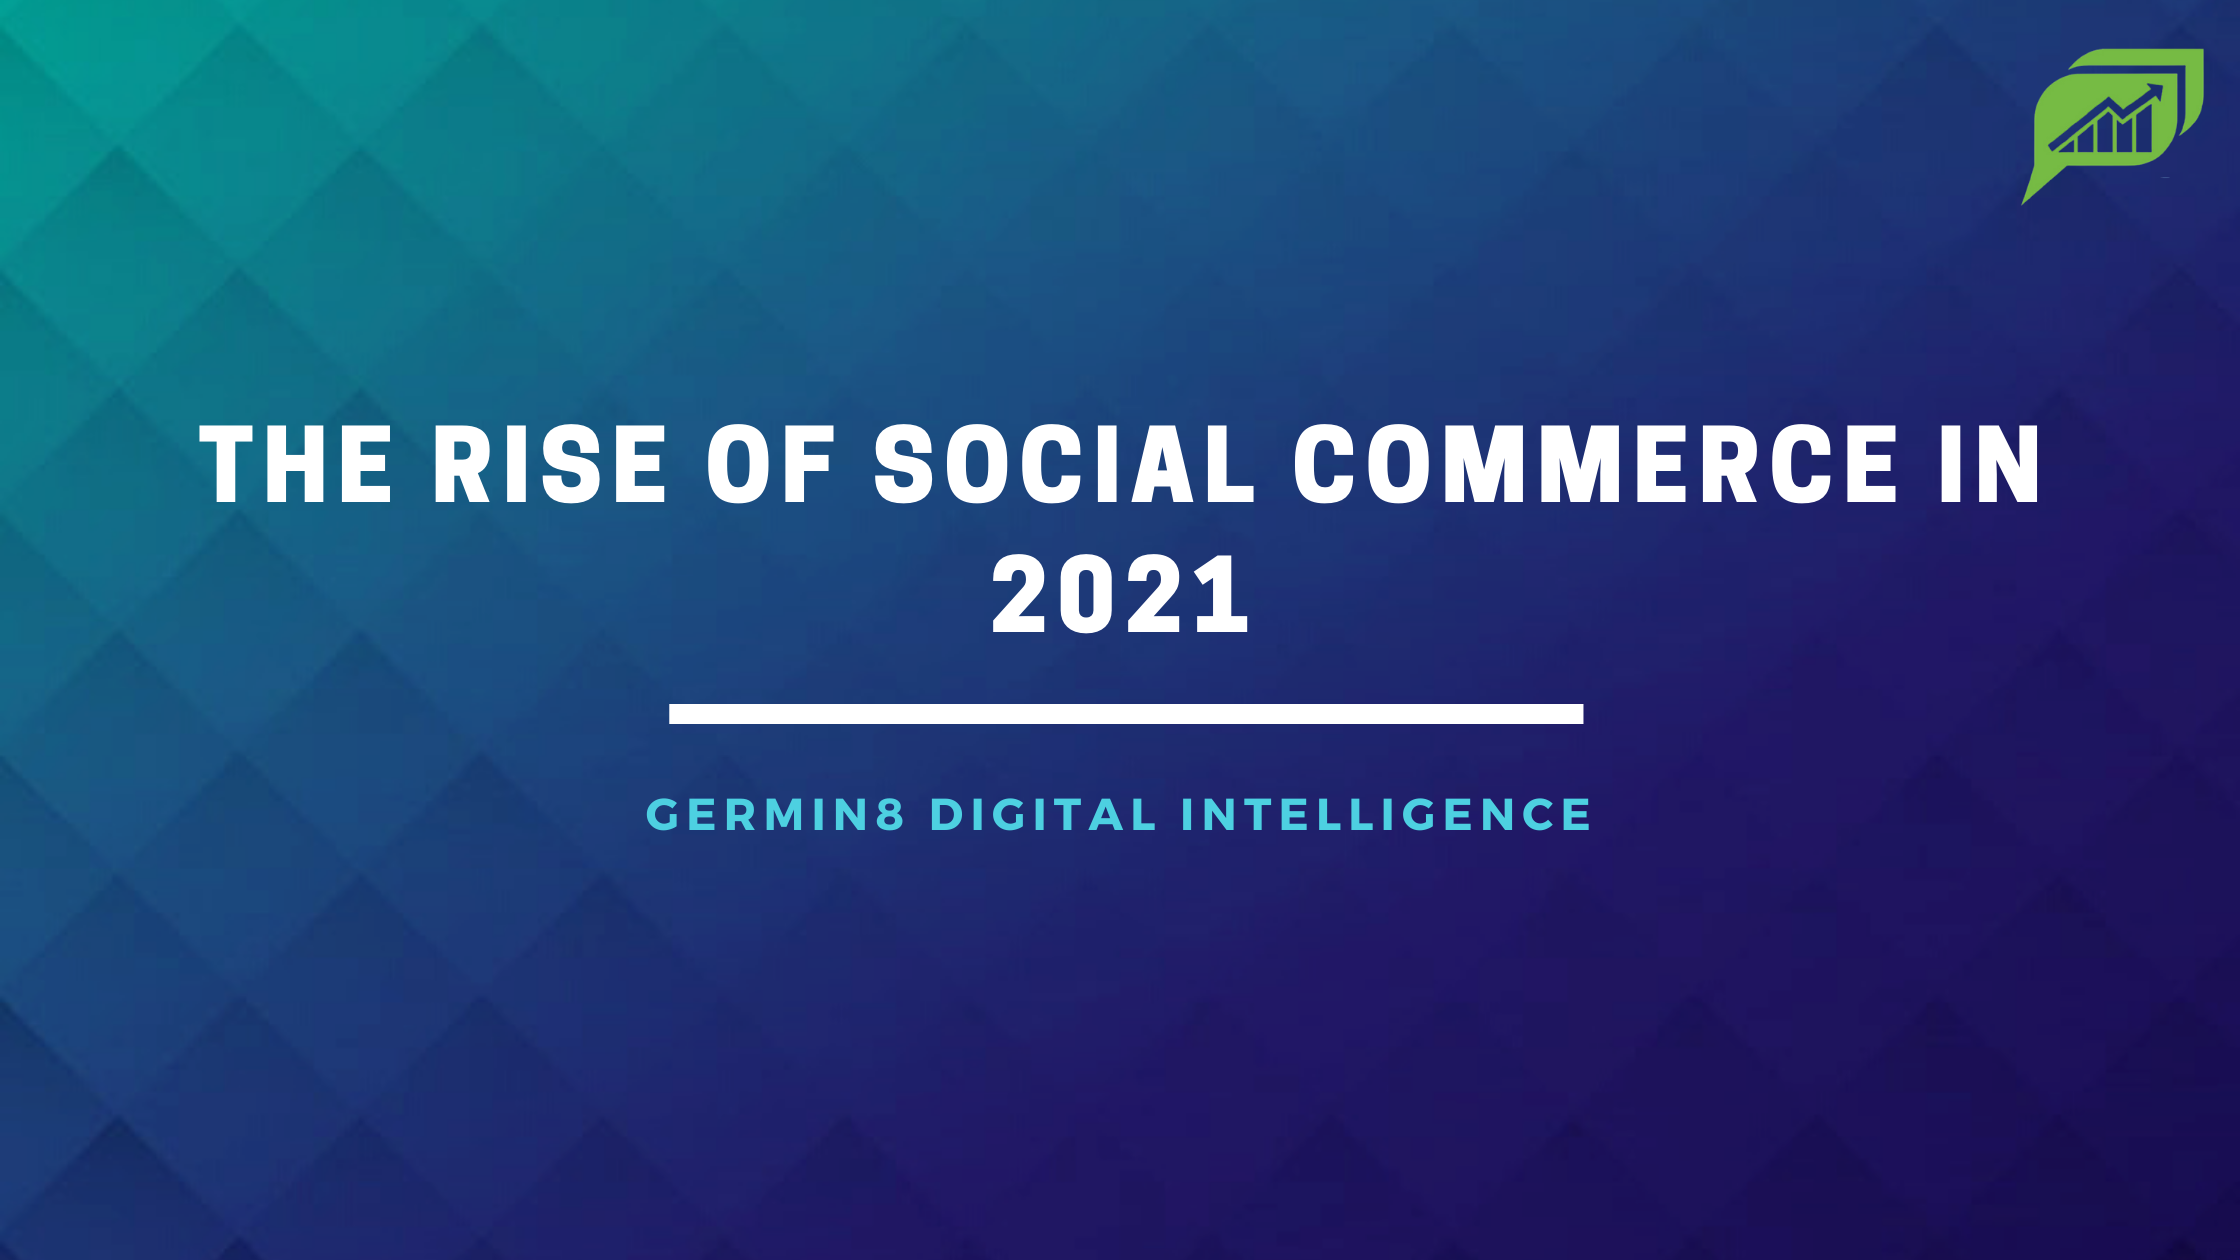 The Rise of Social Commerce in 2021